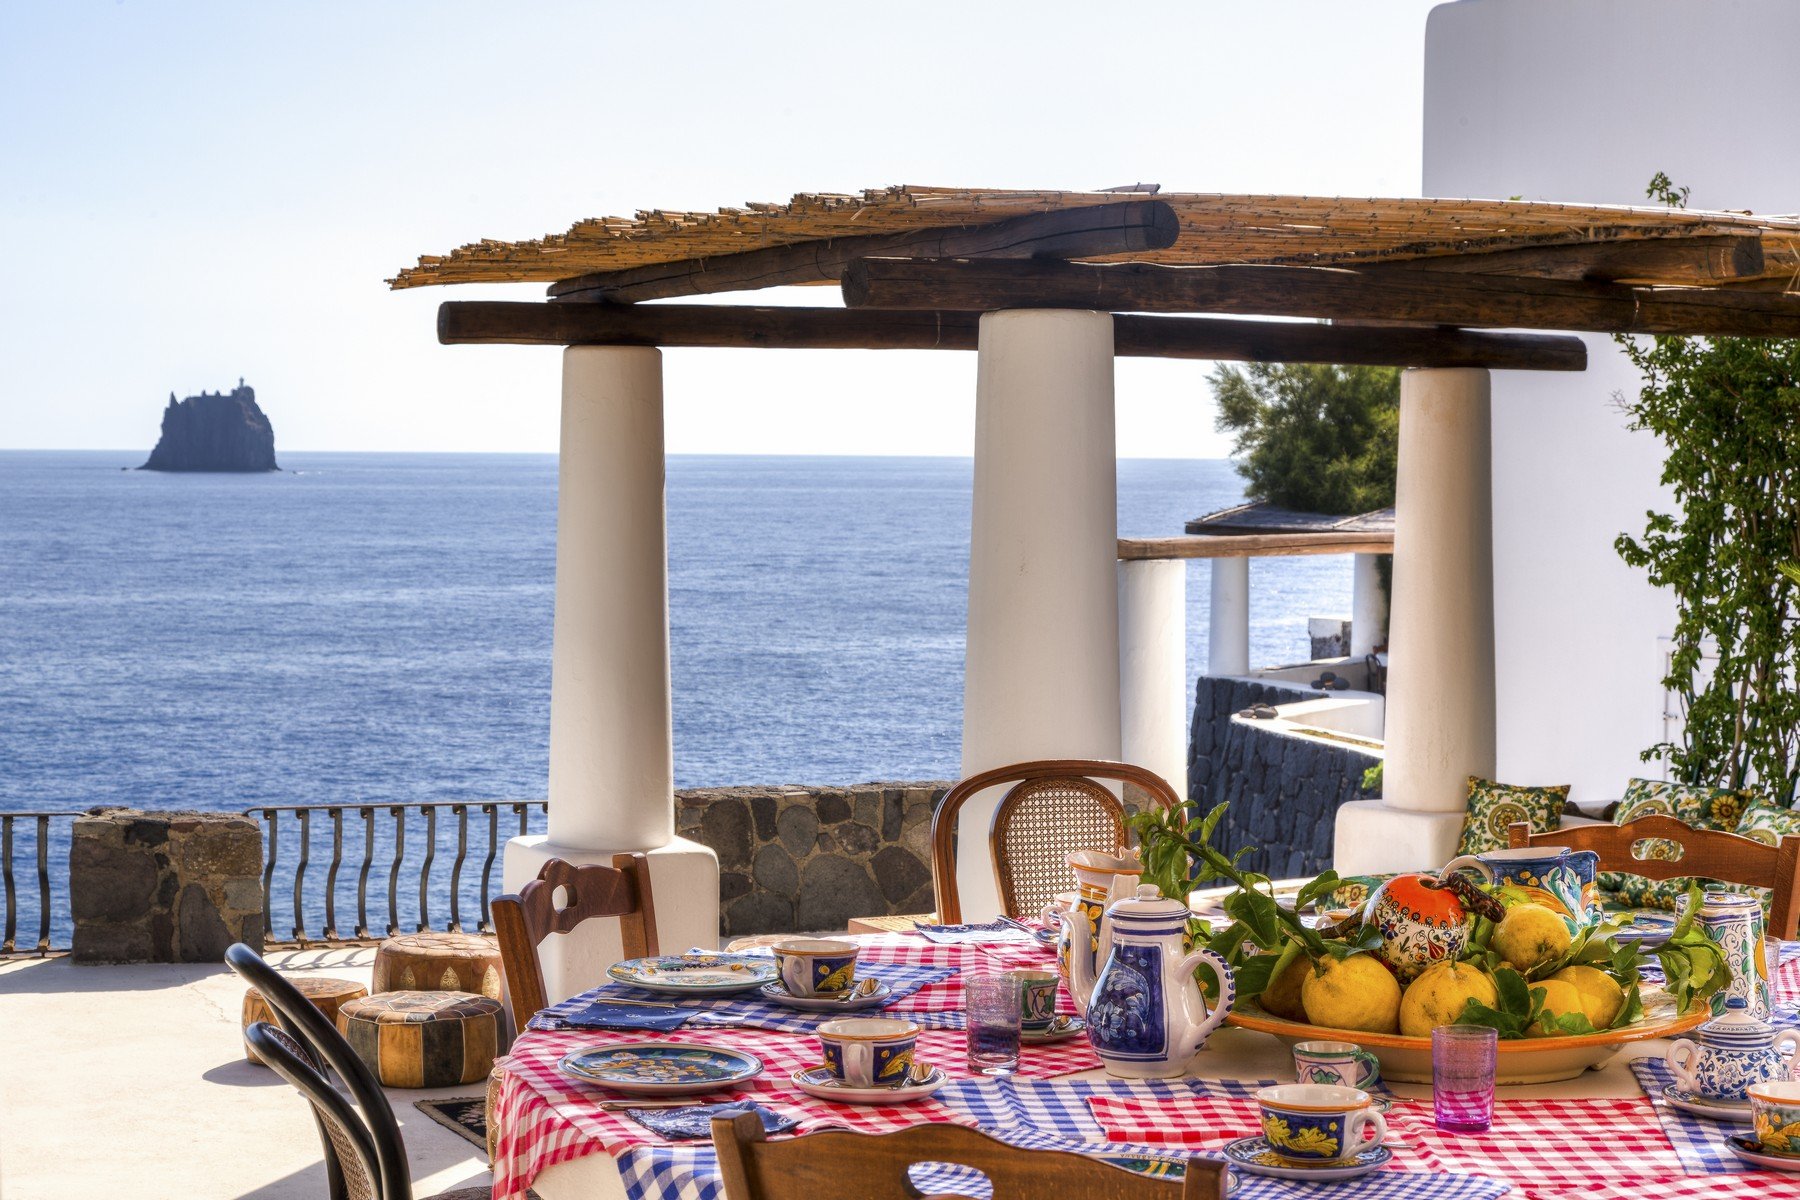 Additional photo for property listing at Fashion glamour at the heart of the Mediterranean Stromboli Stromboli, Messina 98050 Italien